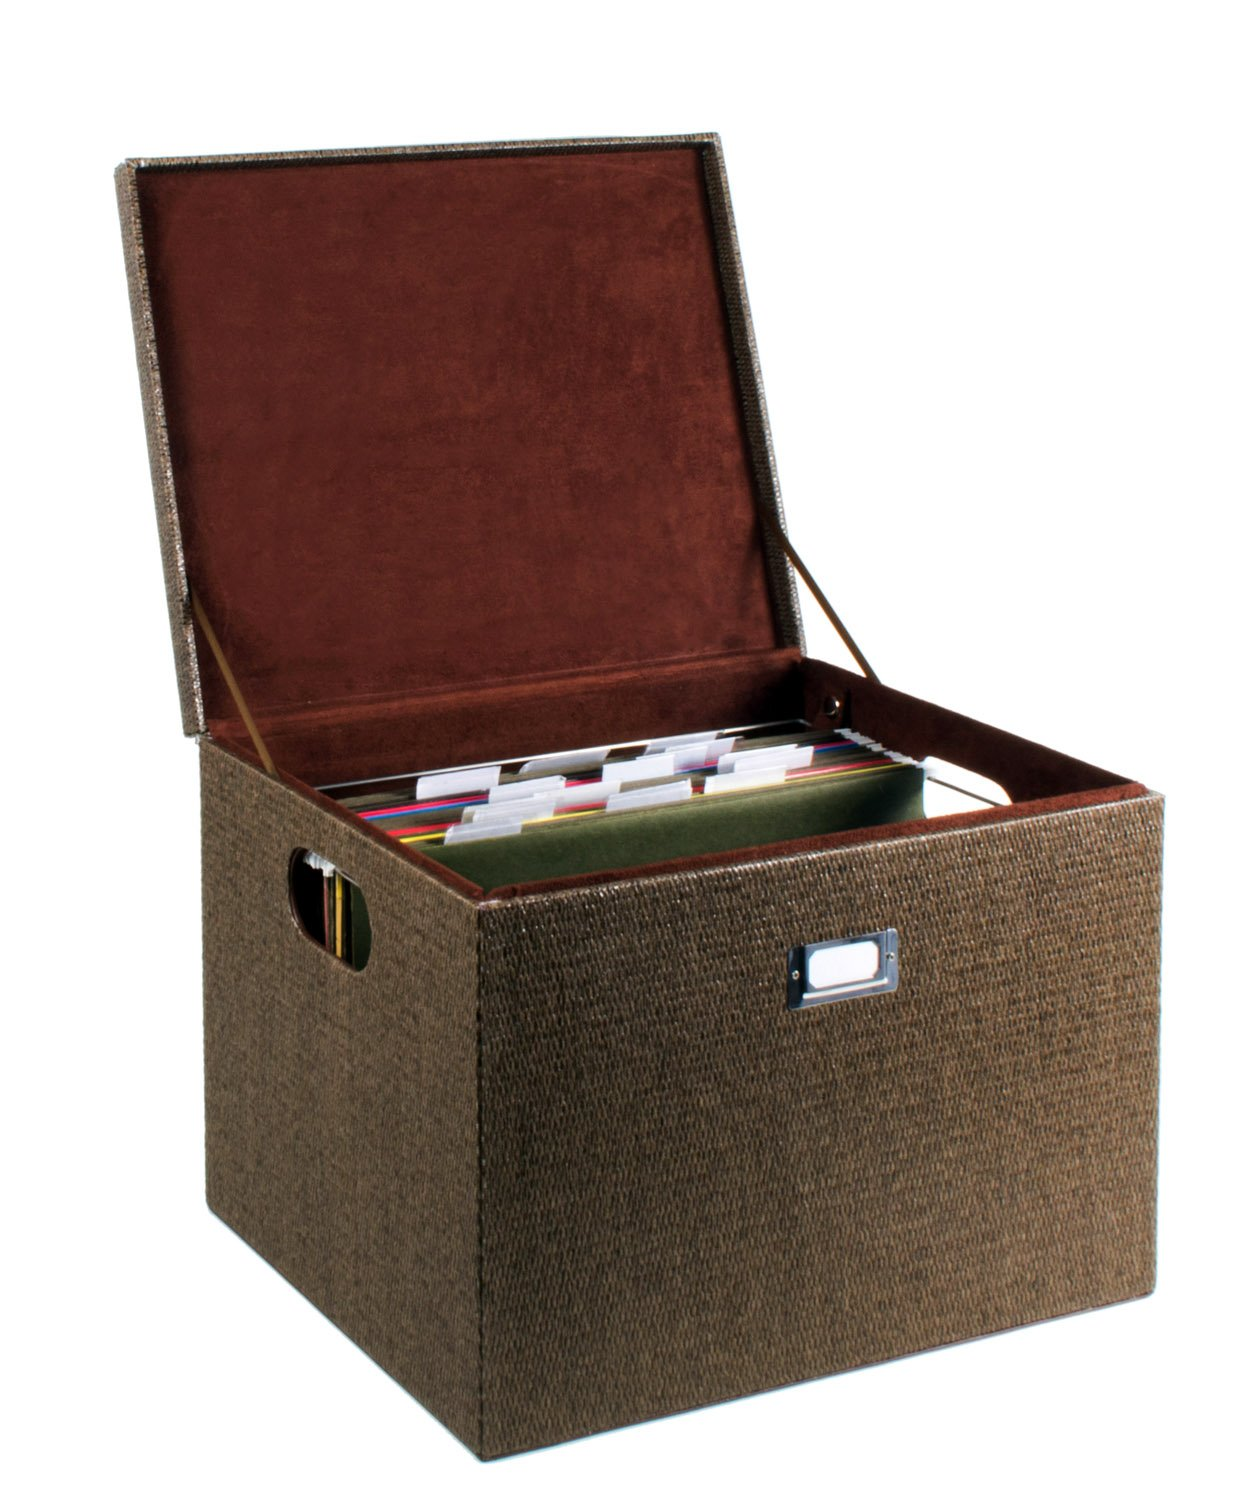 G.U.S. Decorative Office File and Portable Storage Box For Hanging Folders Letter Or Legal, Woven Rattan